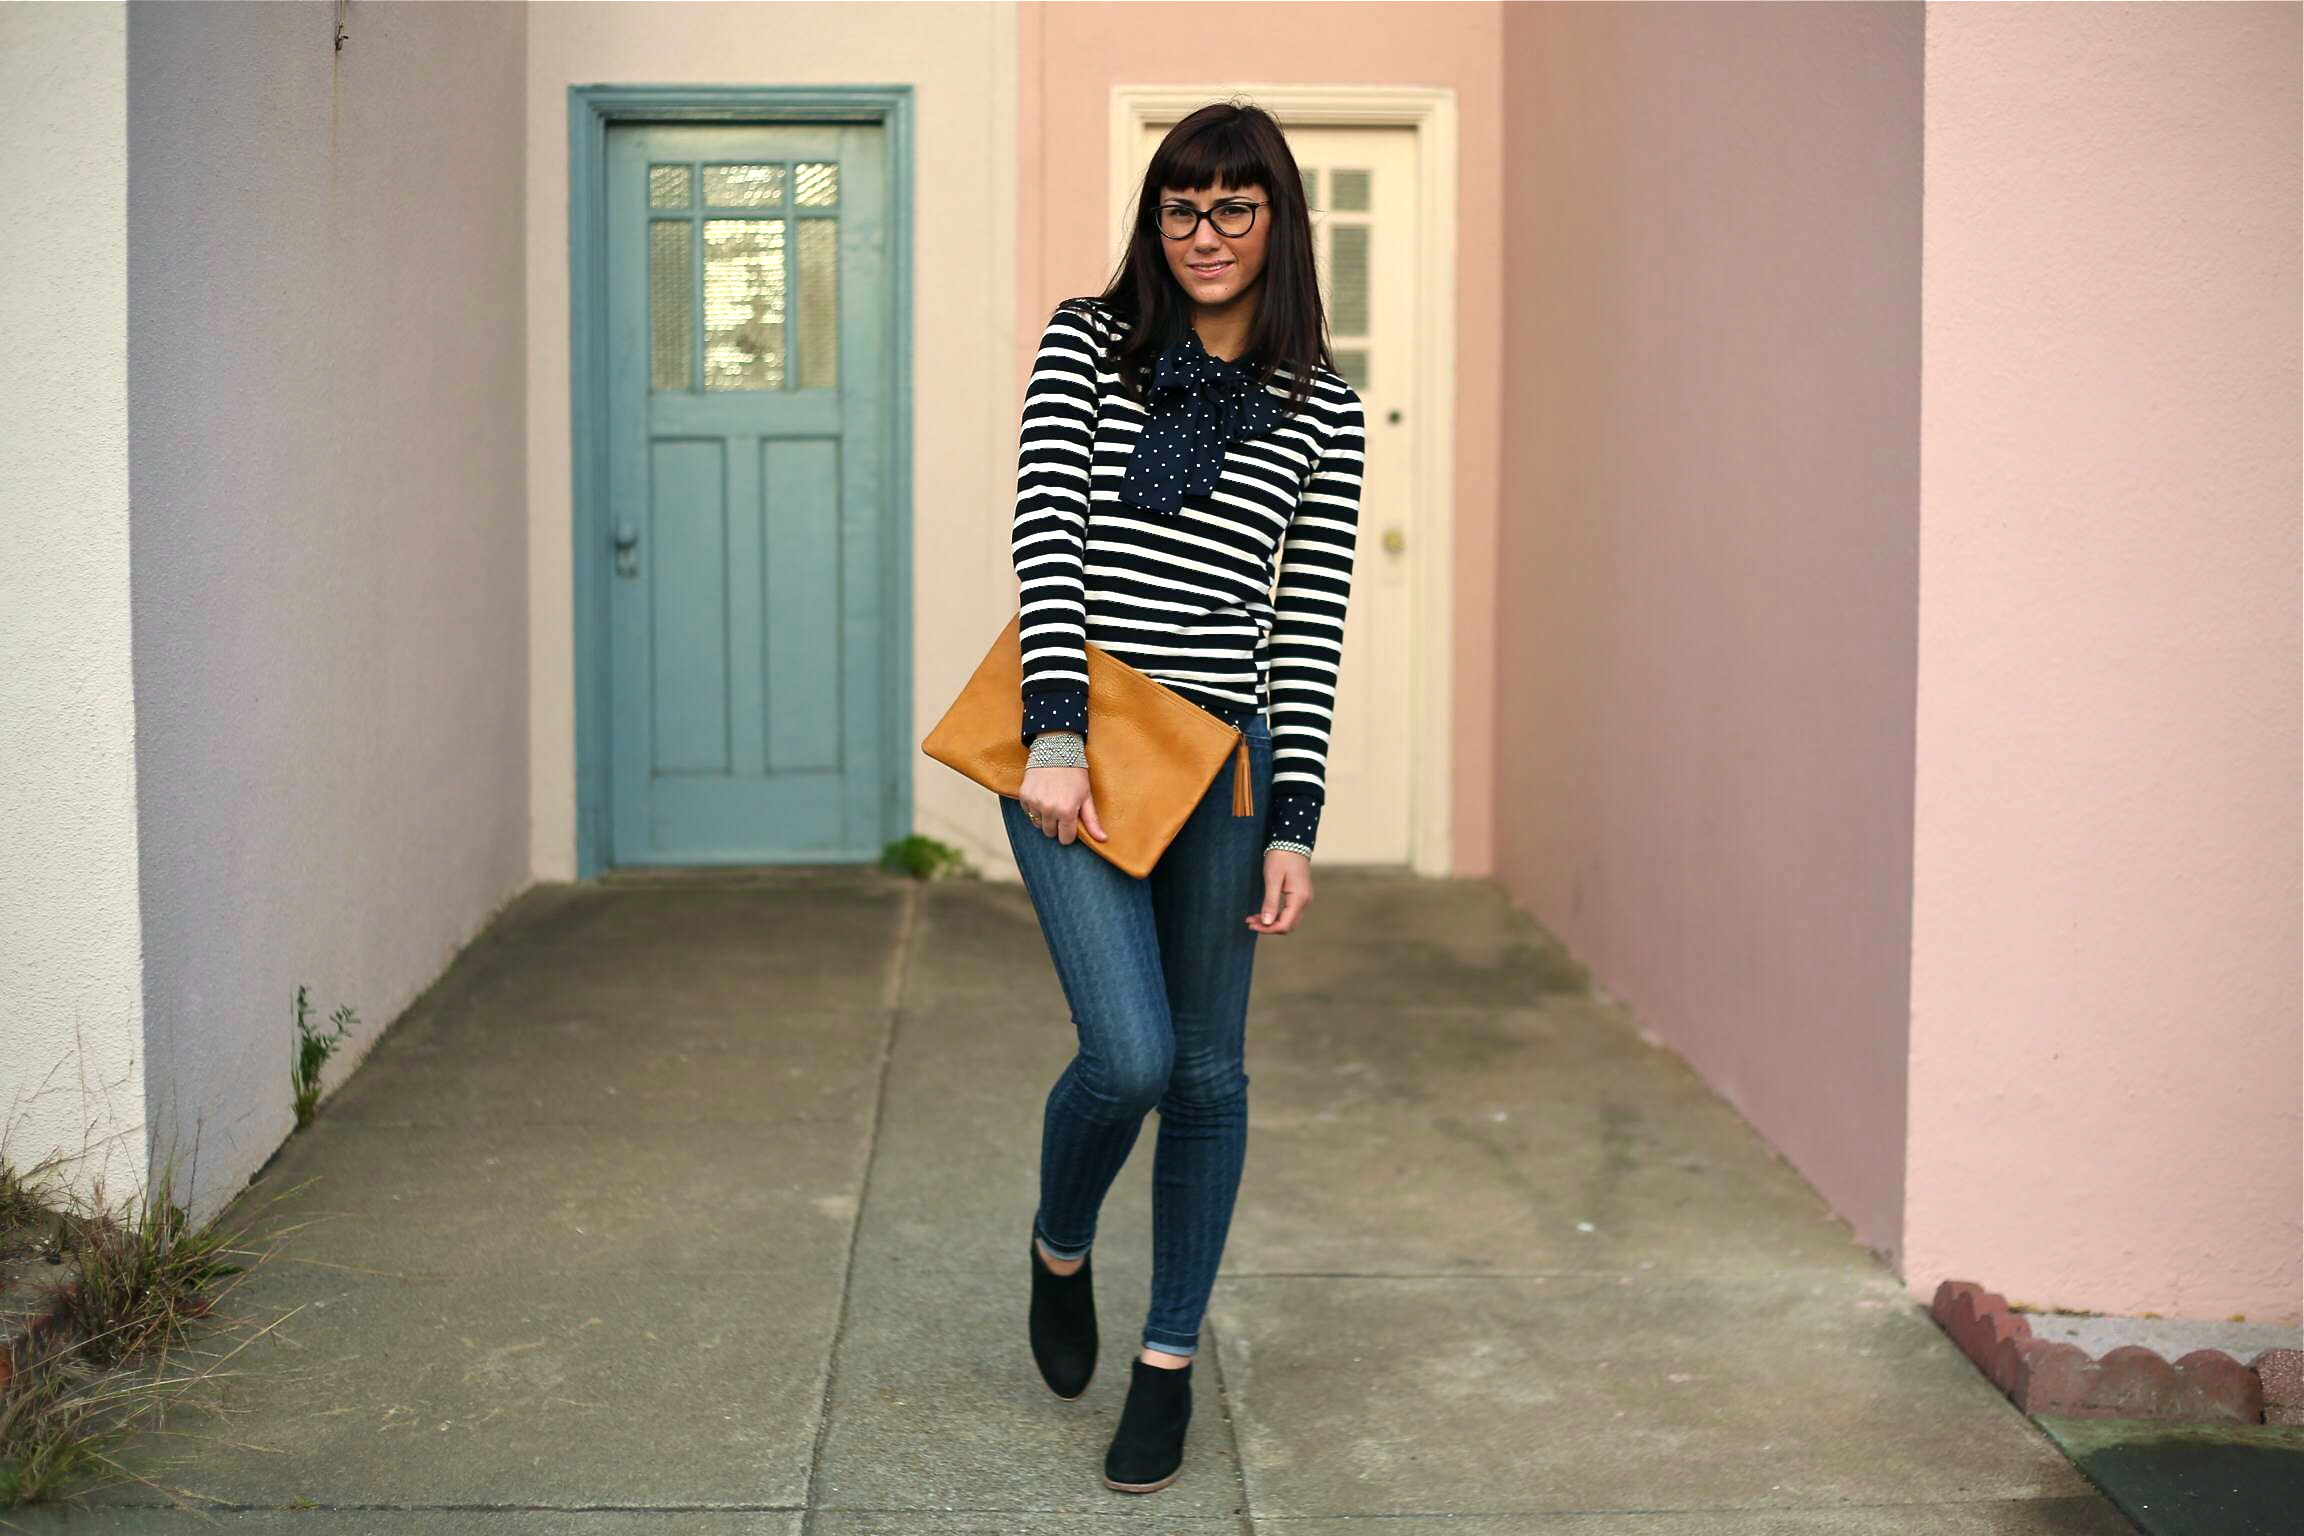 Bow Blouse (Old): Uniqlo, Shop New  Here ; Stripe Sweater: J.Crew; Jeans: Level 99, Anthropology;  Boots: Jigsaw London ; Clutch: Madewell